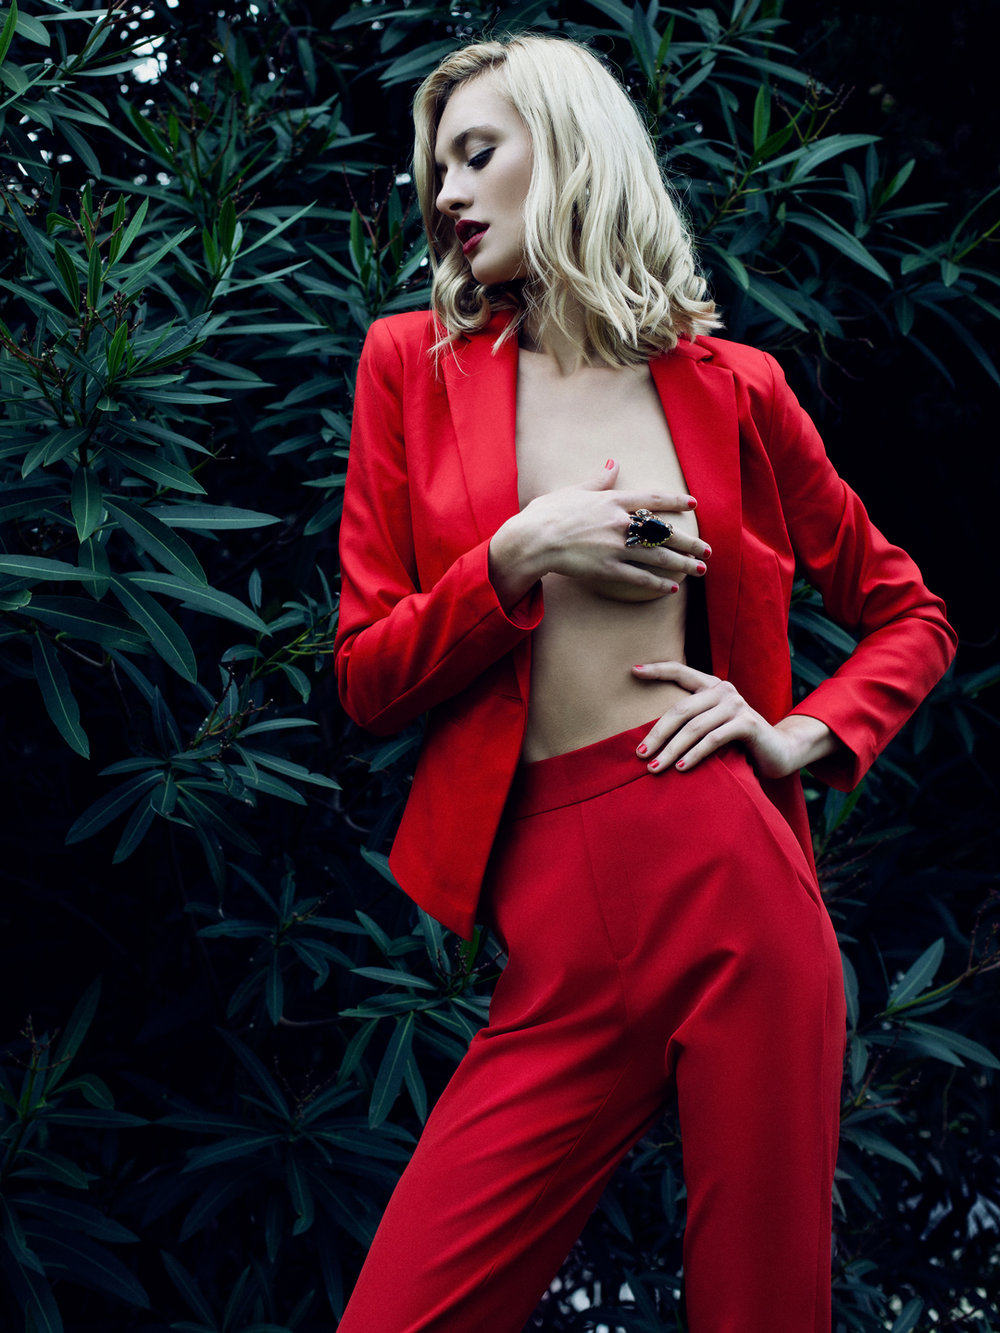 """Tainted Red"" editorial featuring Nadia Serlidou (L'Agence), styled by Rita Alves, make up and hair by Inês Marques."